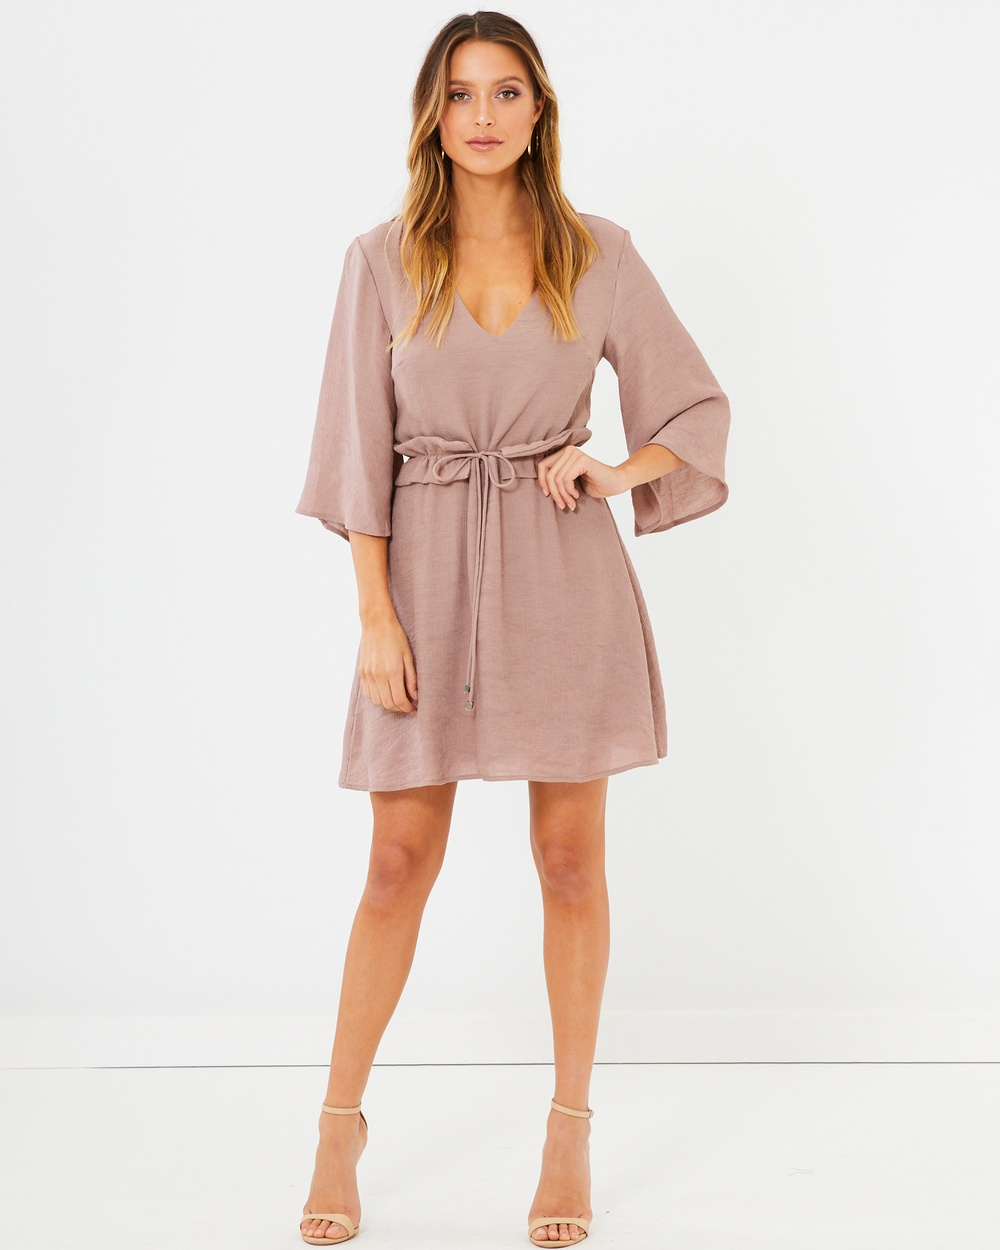 Photo of Tussah Mauve Phoenix Mini Dress - buy Tussah dresses on sale online